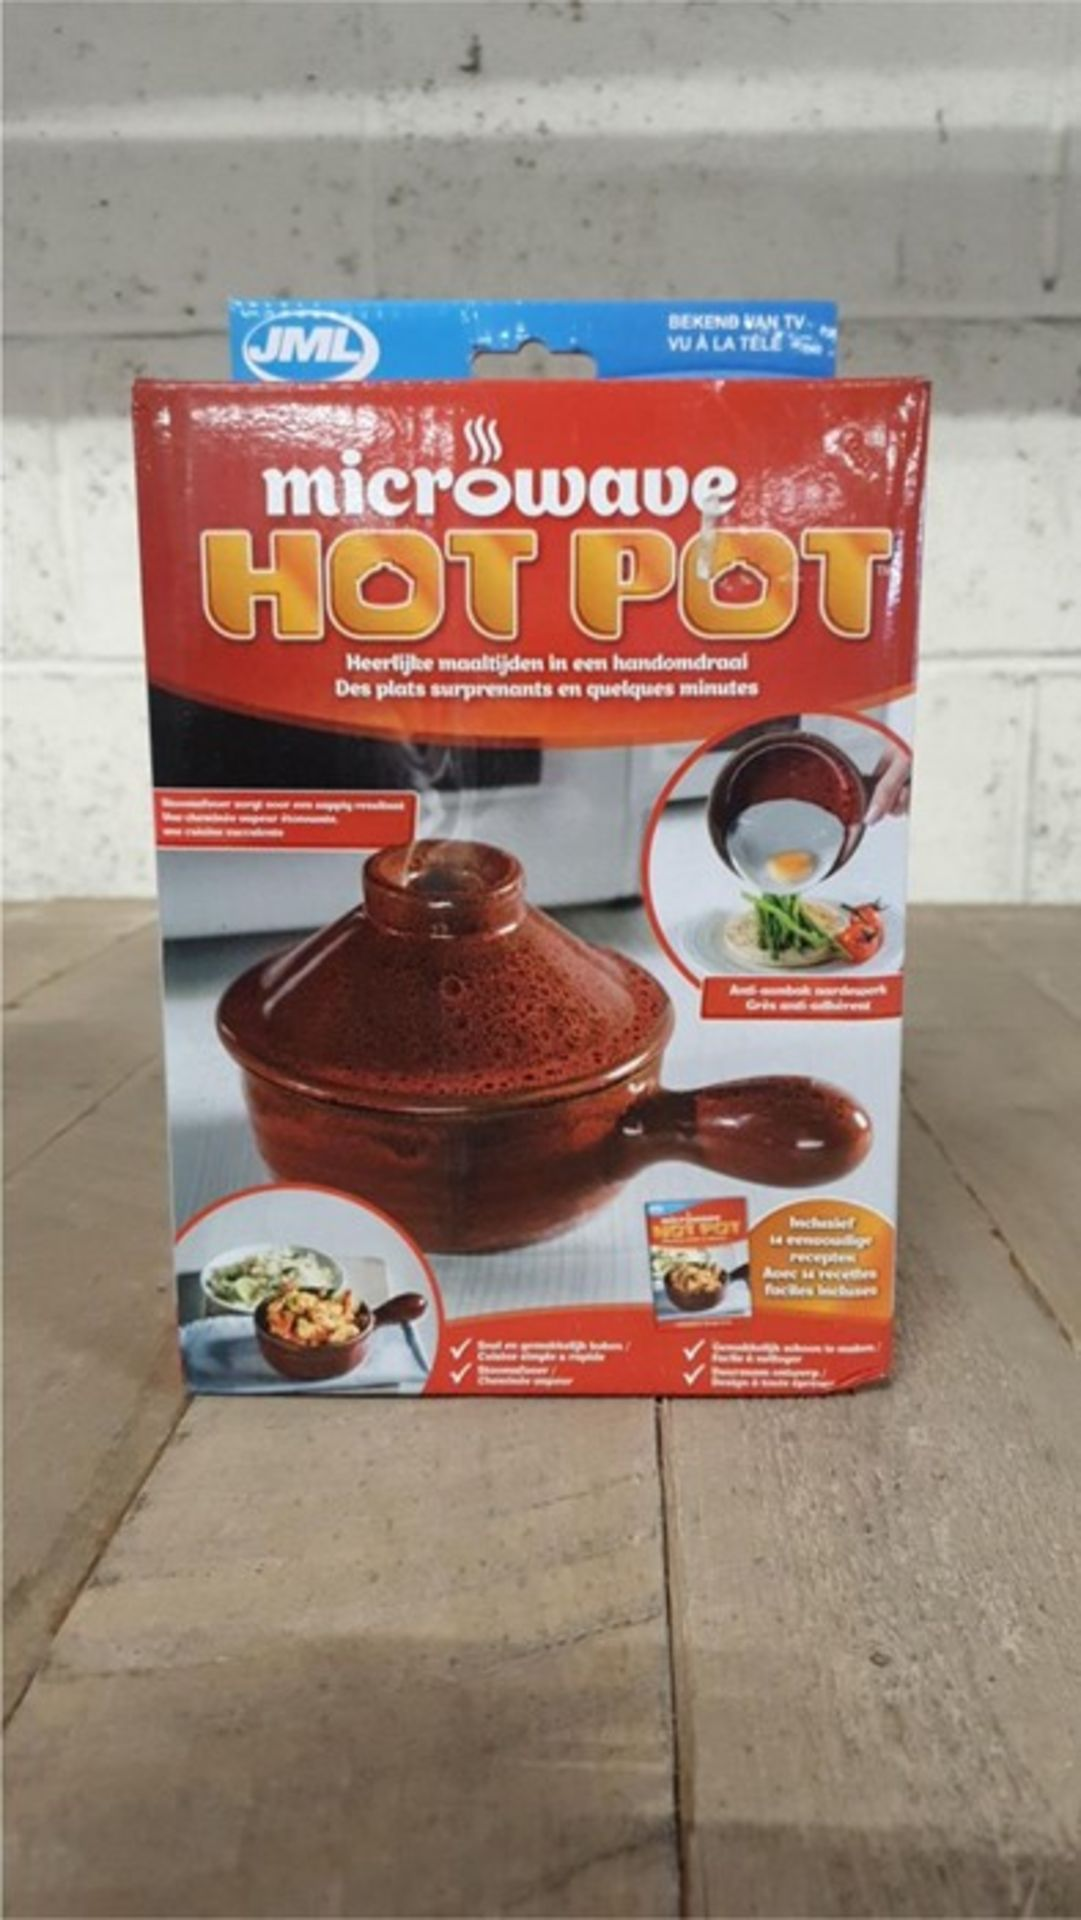 Lot 44 - 1 BOXED JML MICROWAVE HOTPOT CERAMIC POT (VIEWING HIGHLY RECOMMENDED)